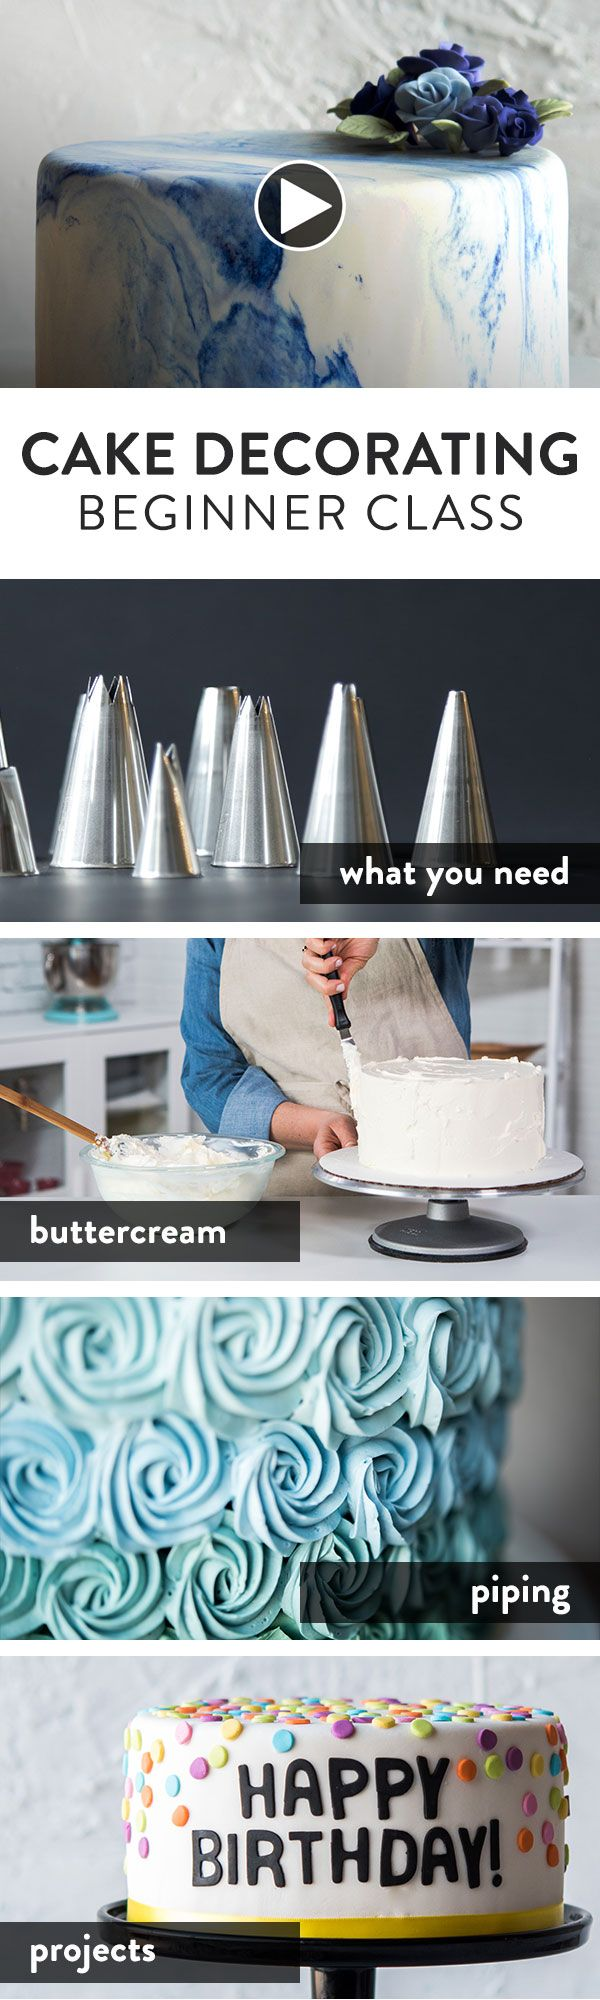 Best Cake Decorating Set For Beginners : Best 25+ Beginner cake decorating ideas on Pinterest ...